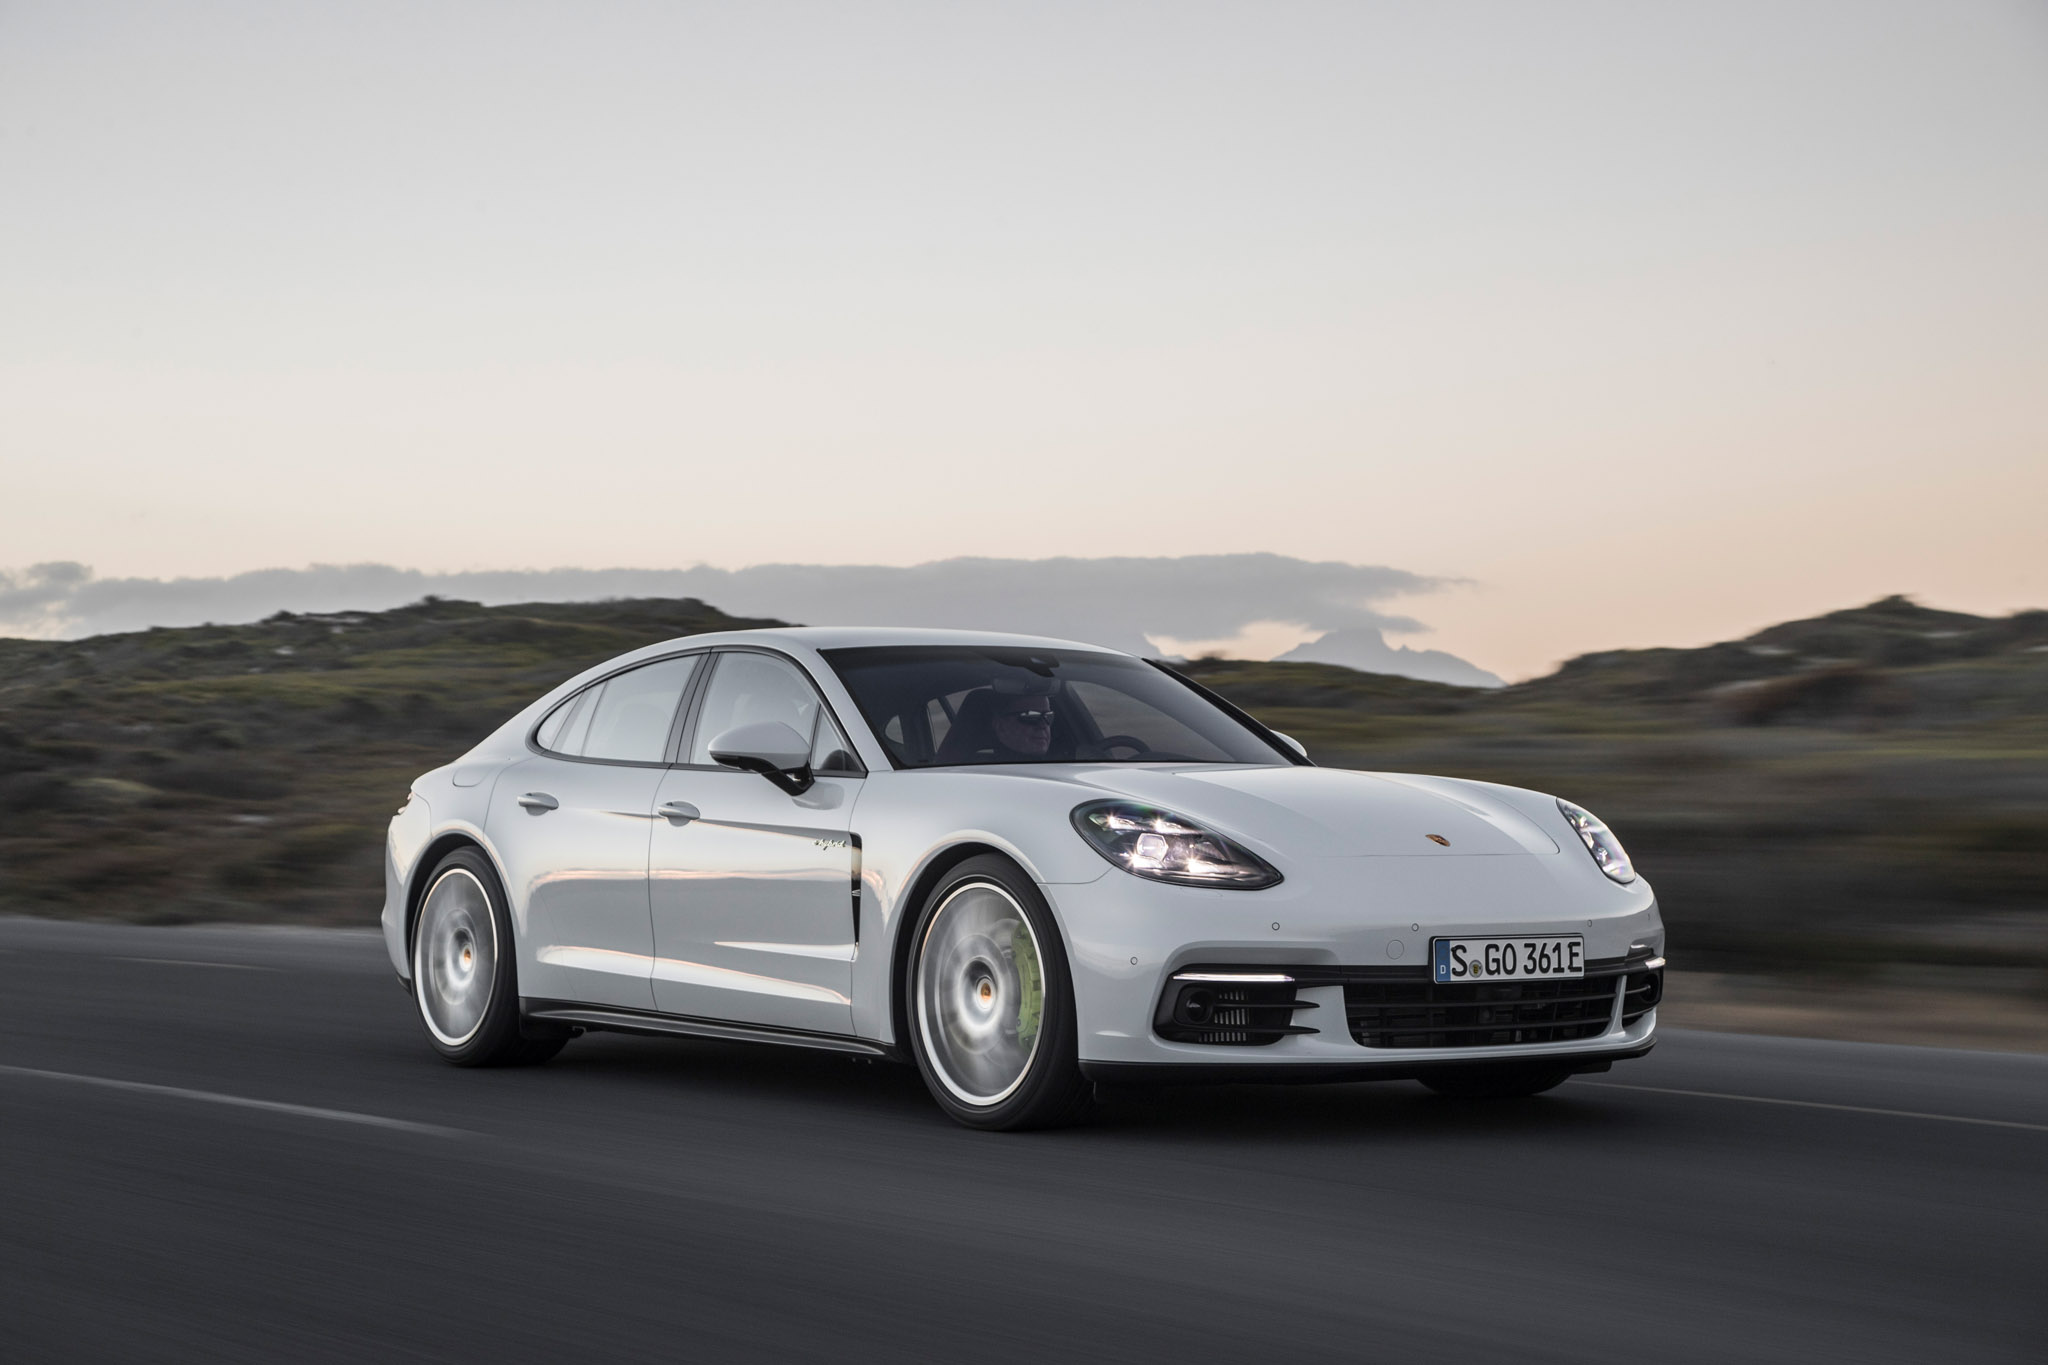 2018 Porsche Panamera 4 E Hybrid Test Drive (Photo 10 of 10)